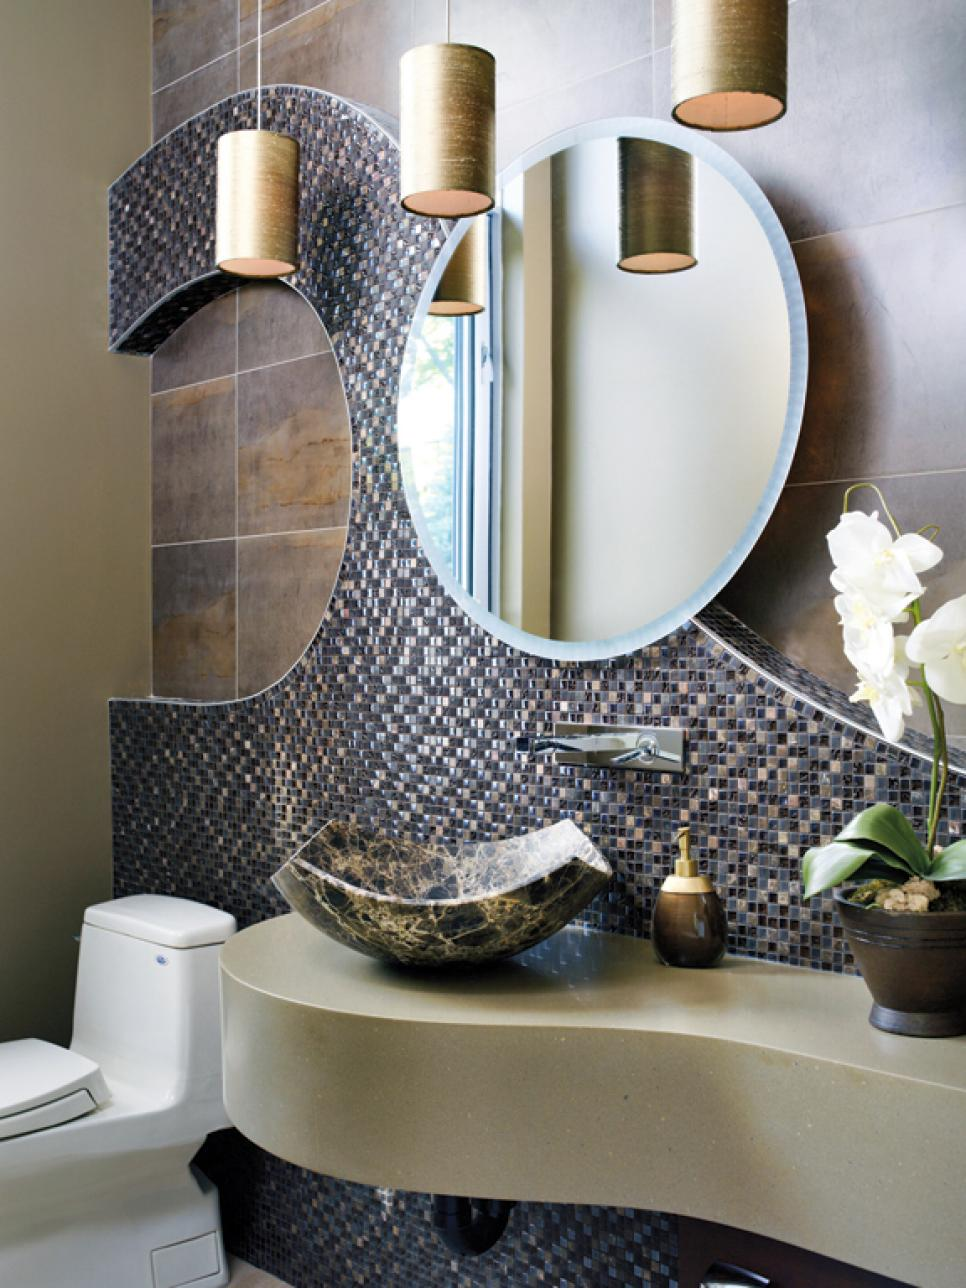 Sophisticated Bathroom Designs HGTV - Bathroom remodel ideas 2014